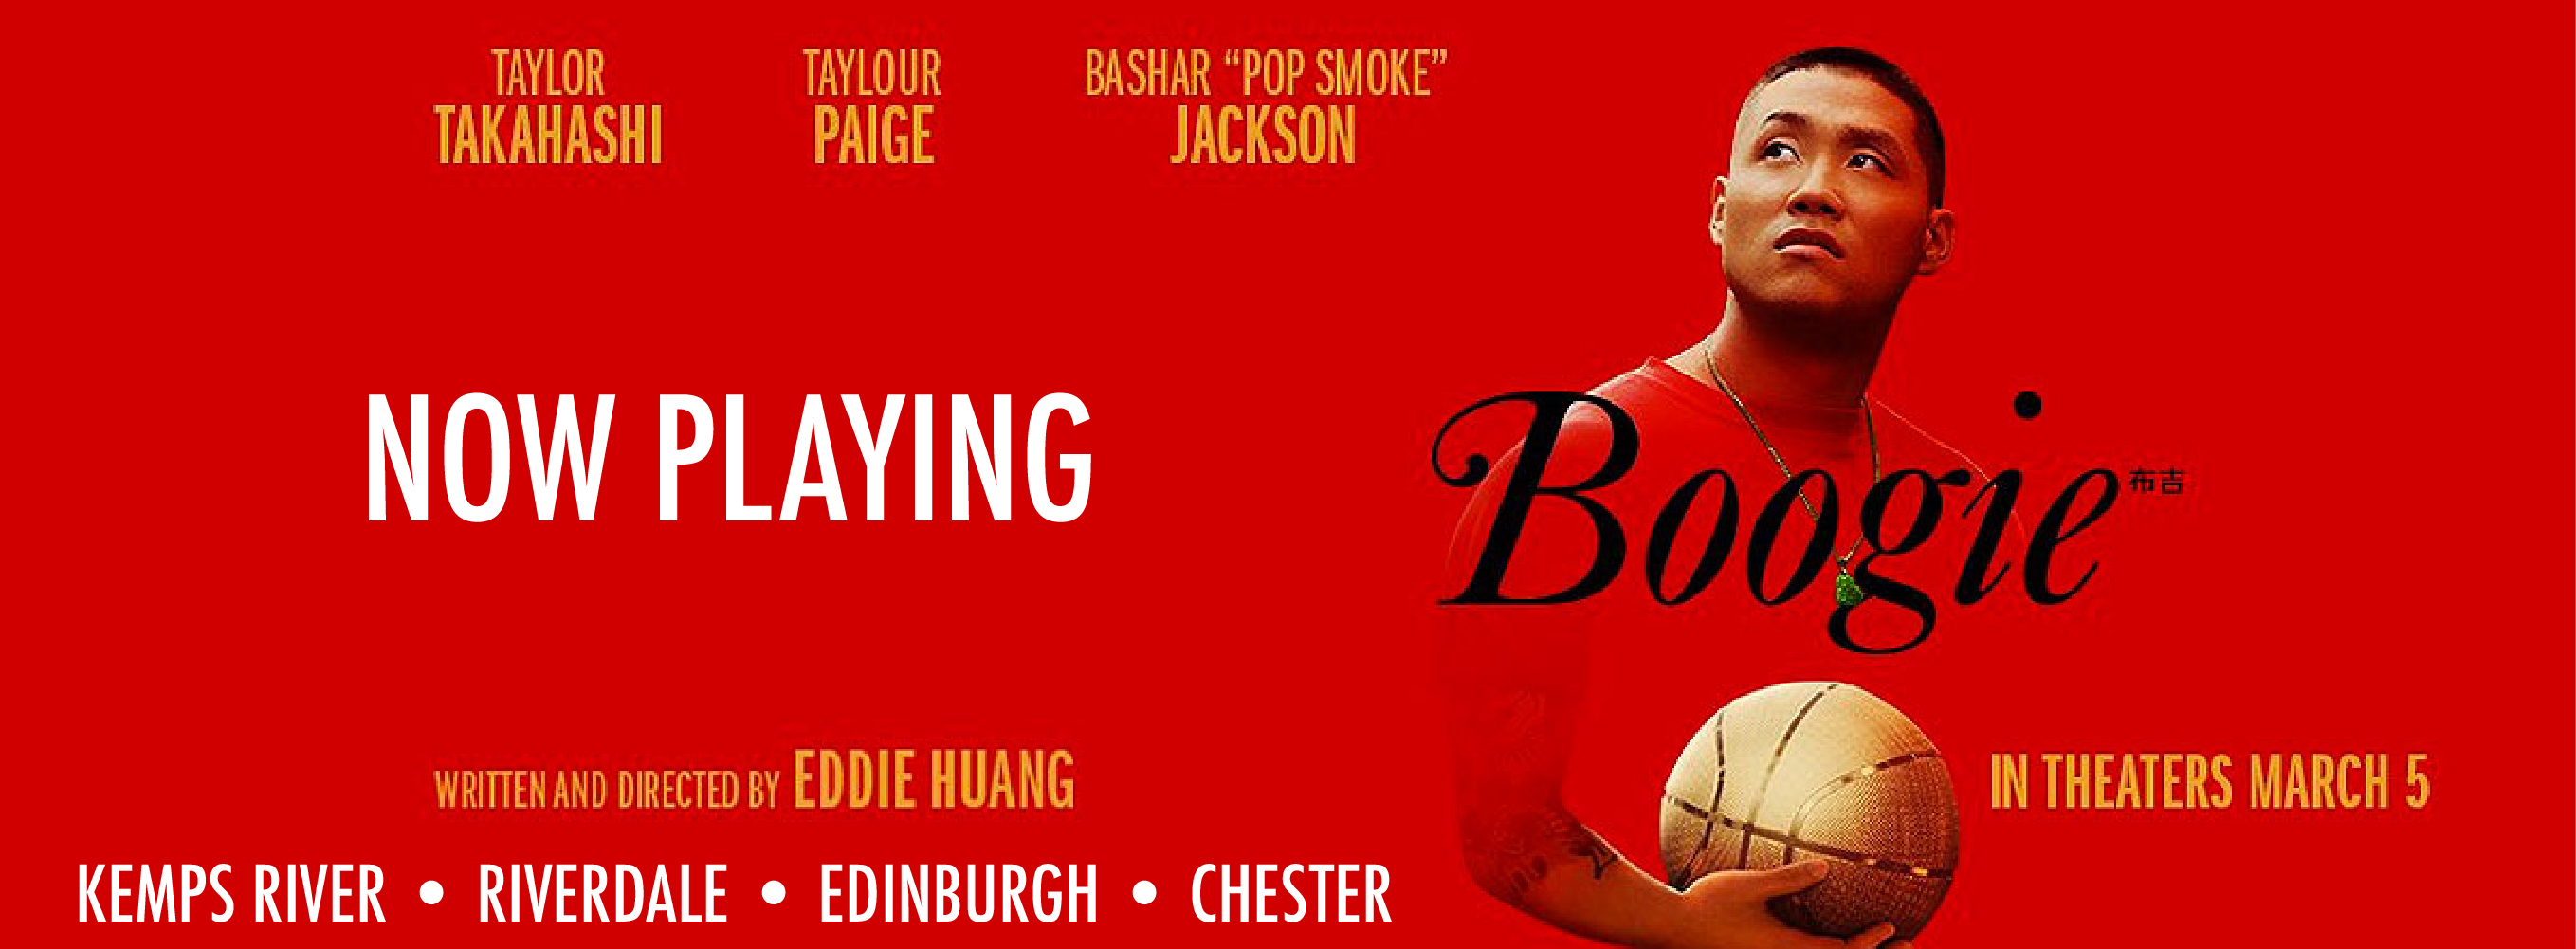 Get tickets to Boogie now playing at the Kemps River, Riverdale, Edinburgh, and Chester locations